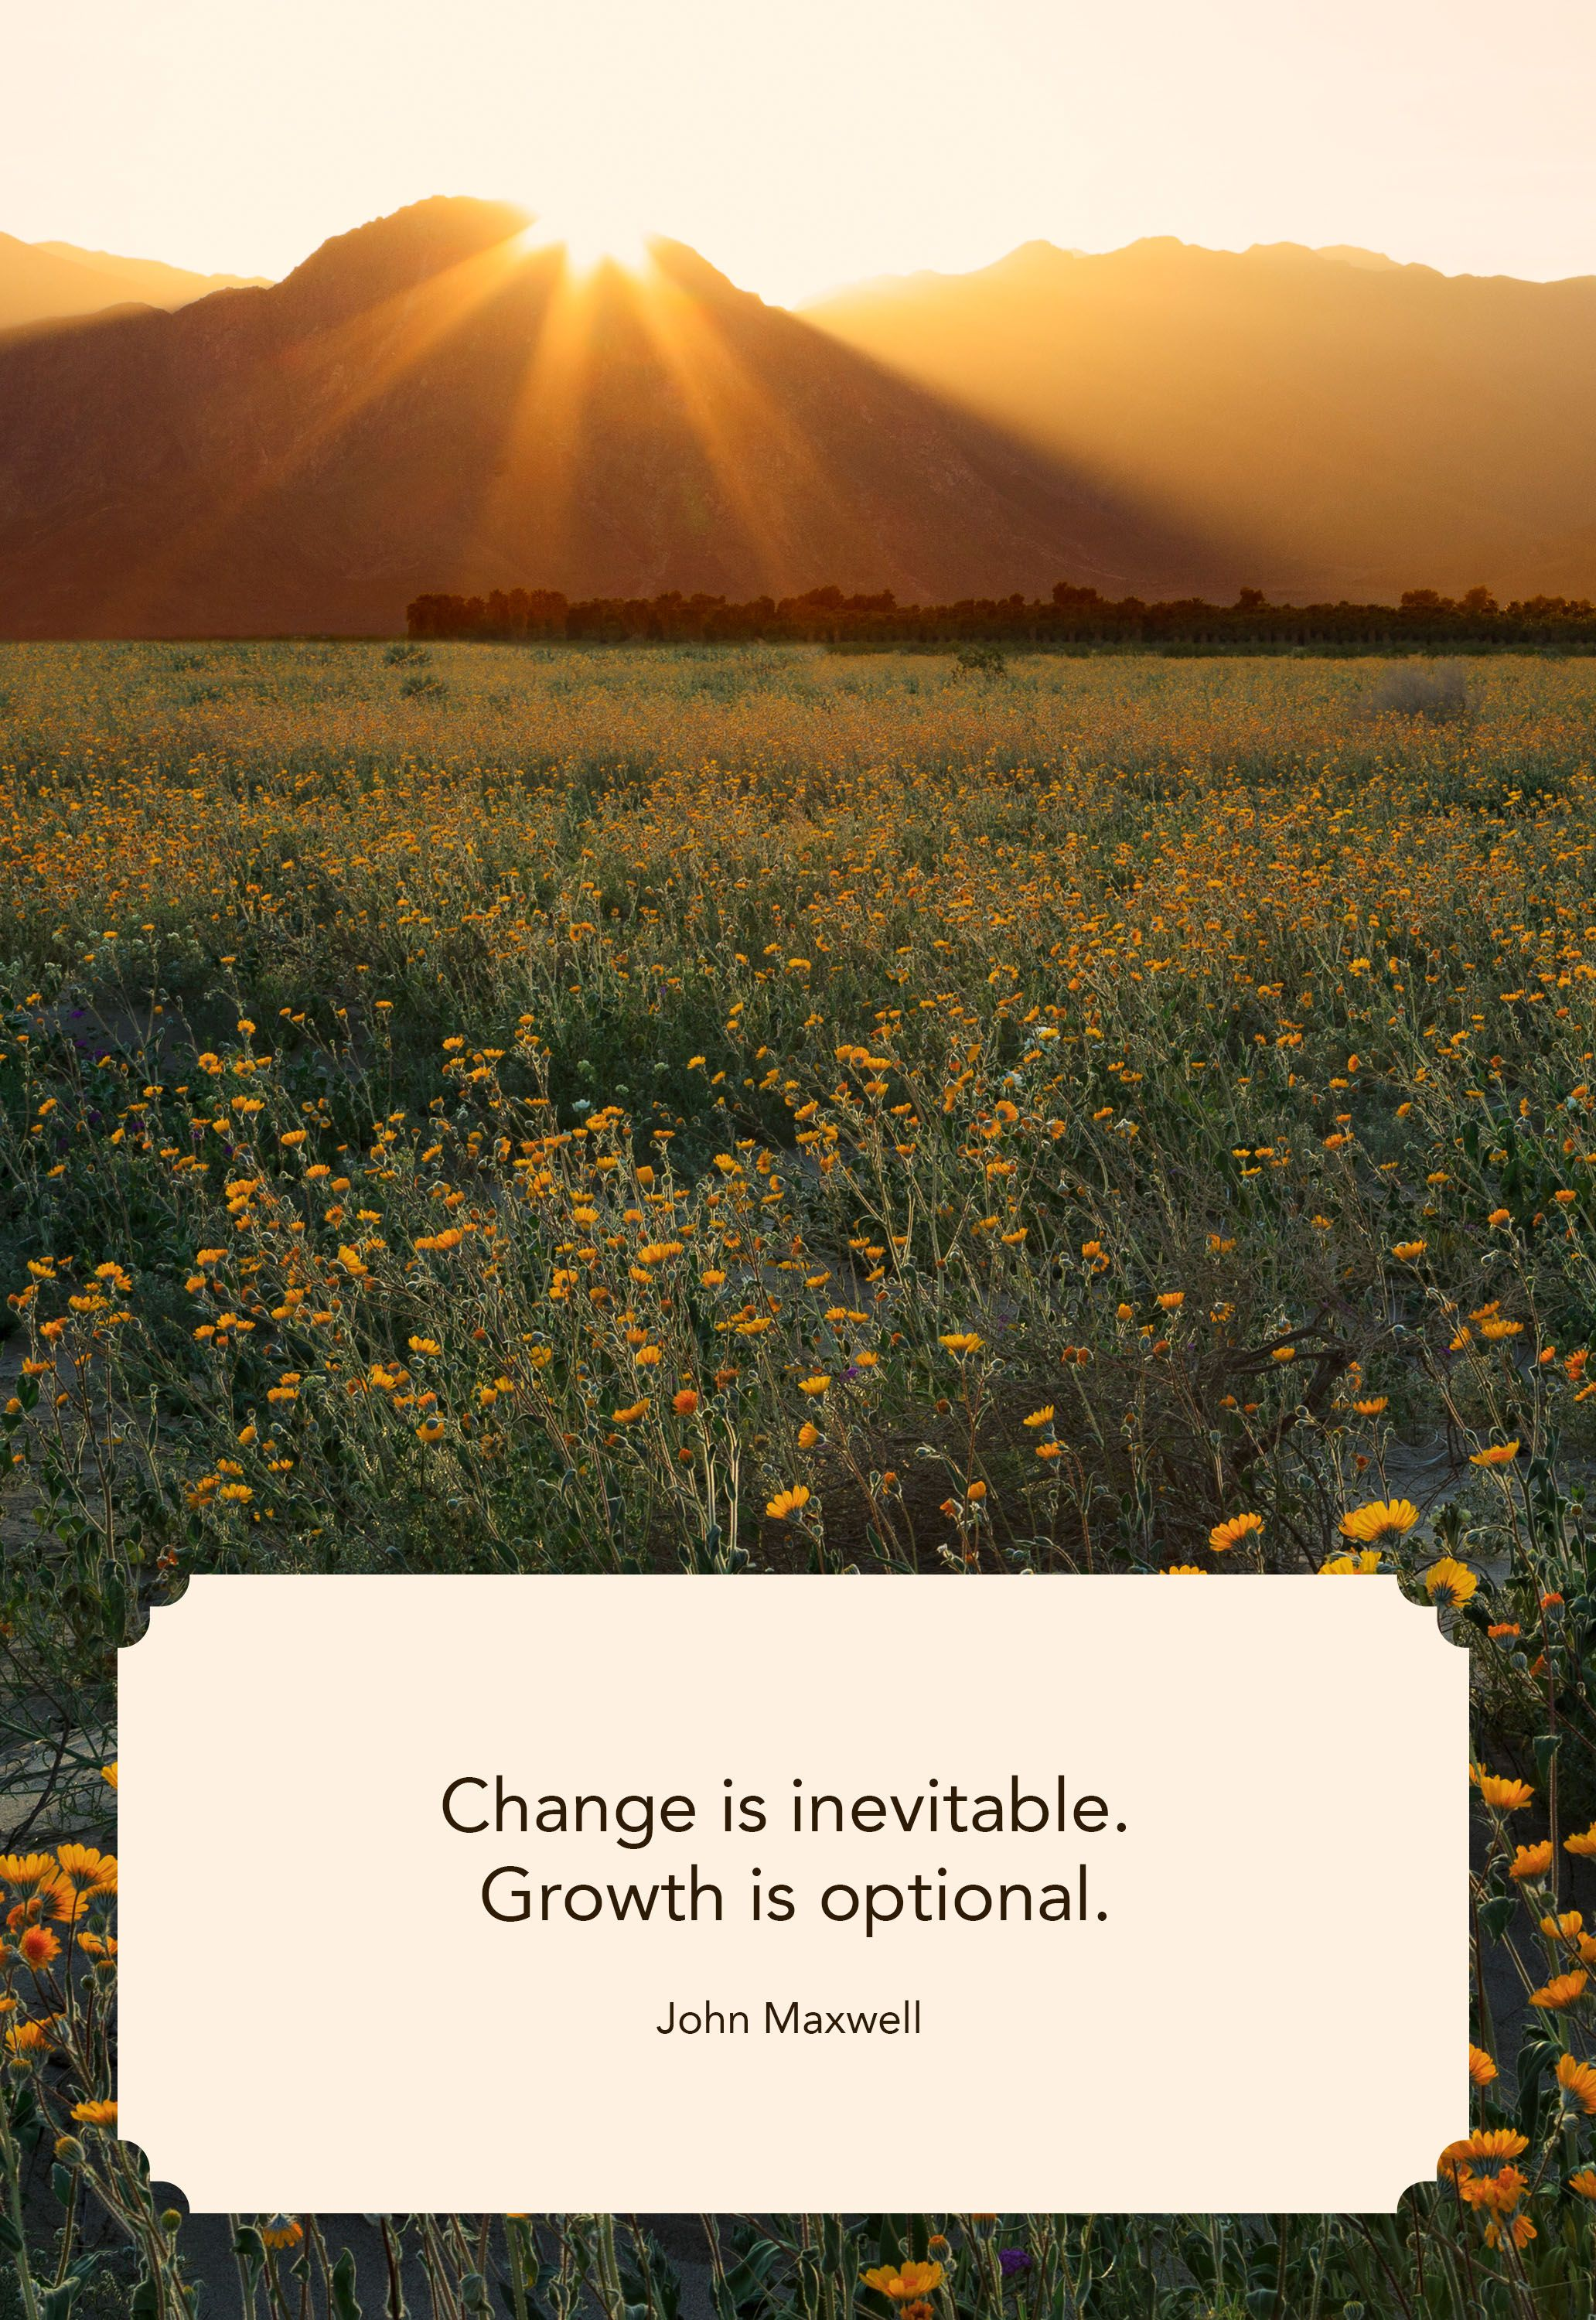 25 Best Quotes About Change - Inspiring Sayings to Navigate ...